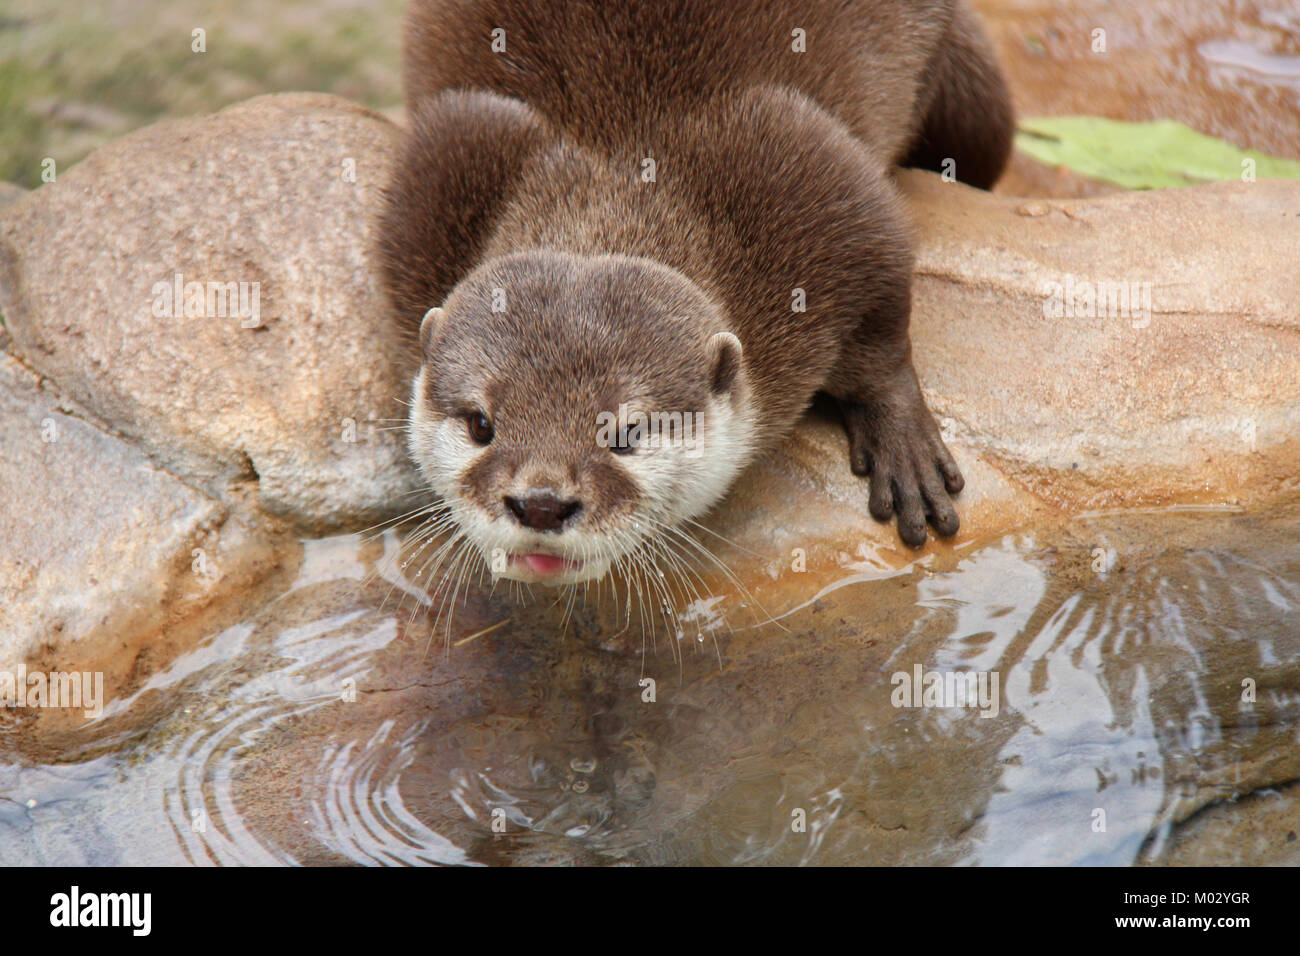 Pet Otter Australia An Otter In A Zoo In Adelaide Australia Stock Photo 172169223